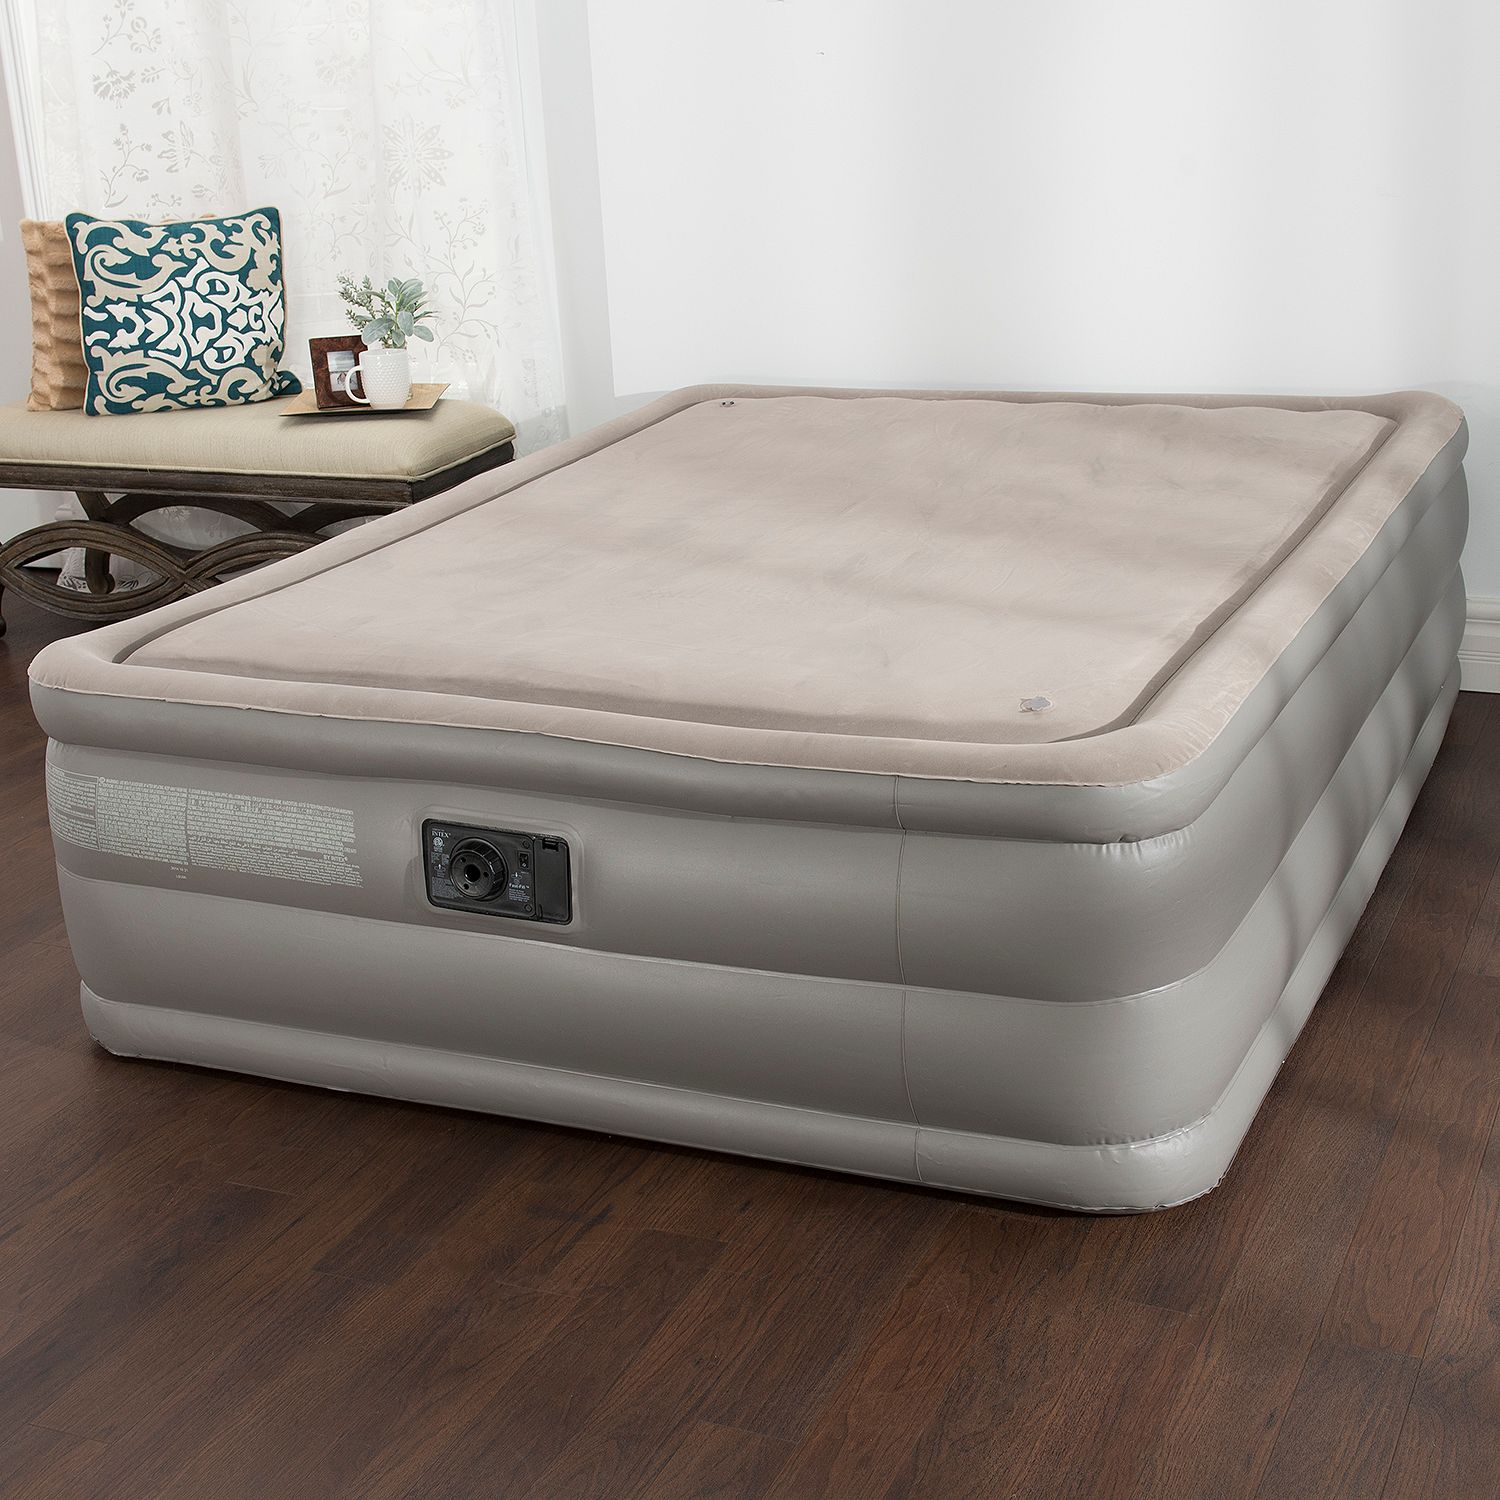 Intex Memory Foam Top High Rise Inflatable Air Bed Mattress Queen New Ebay